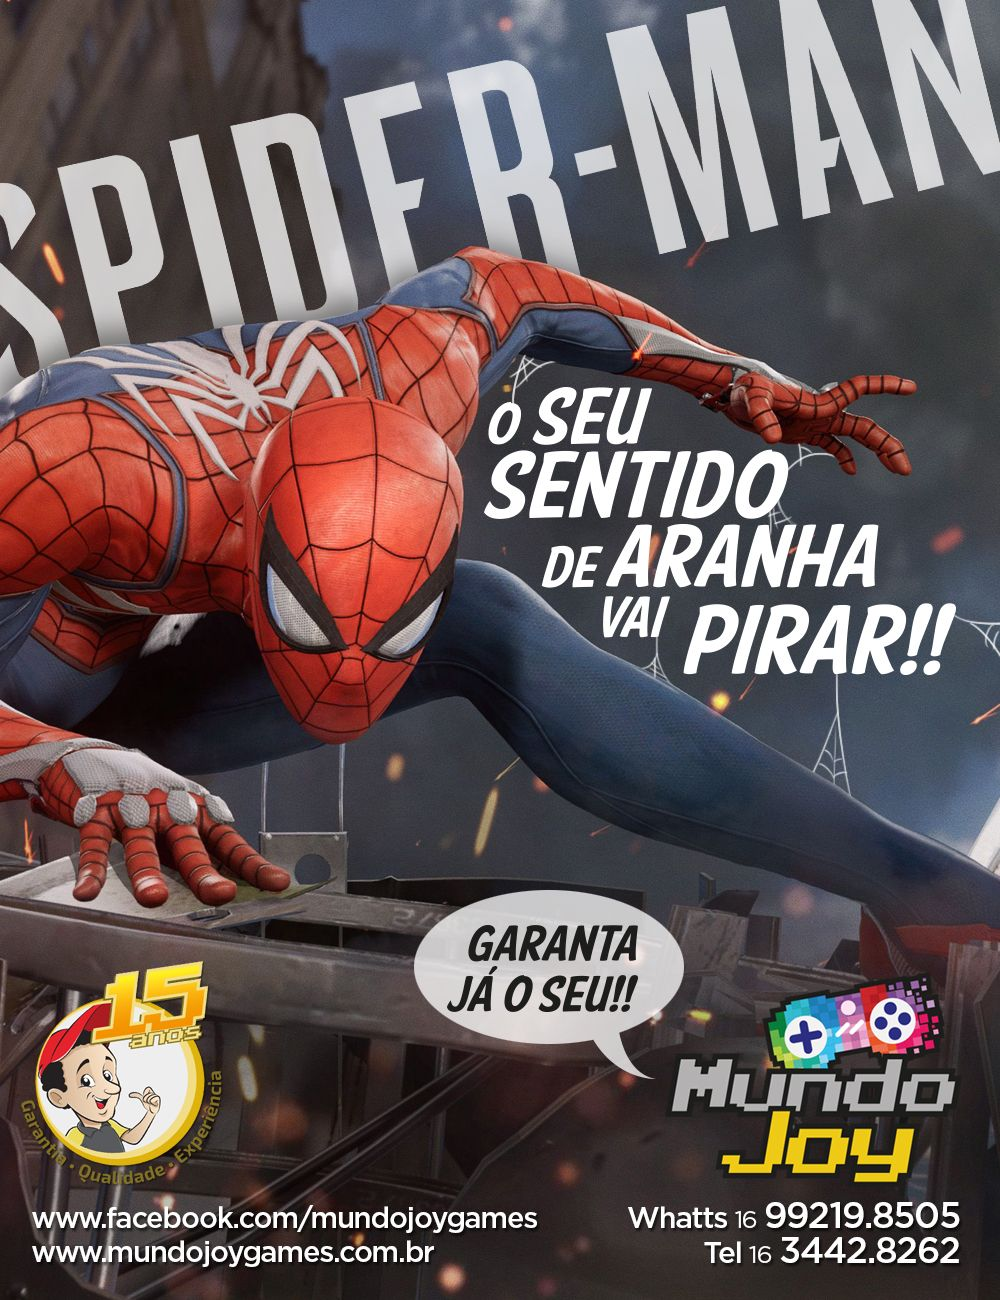 Spider Man - PS4 + Poster 30x20 Pré-venda 08/09/2018